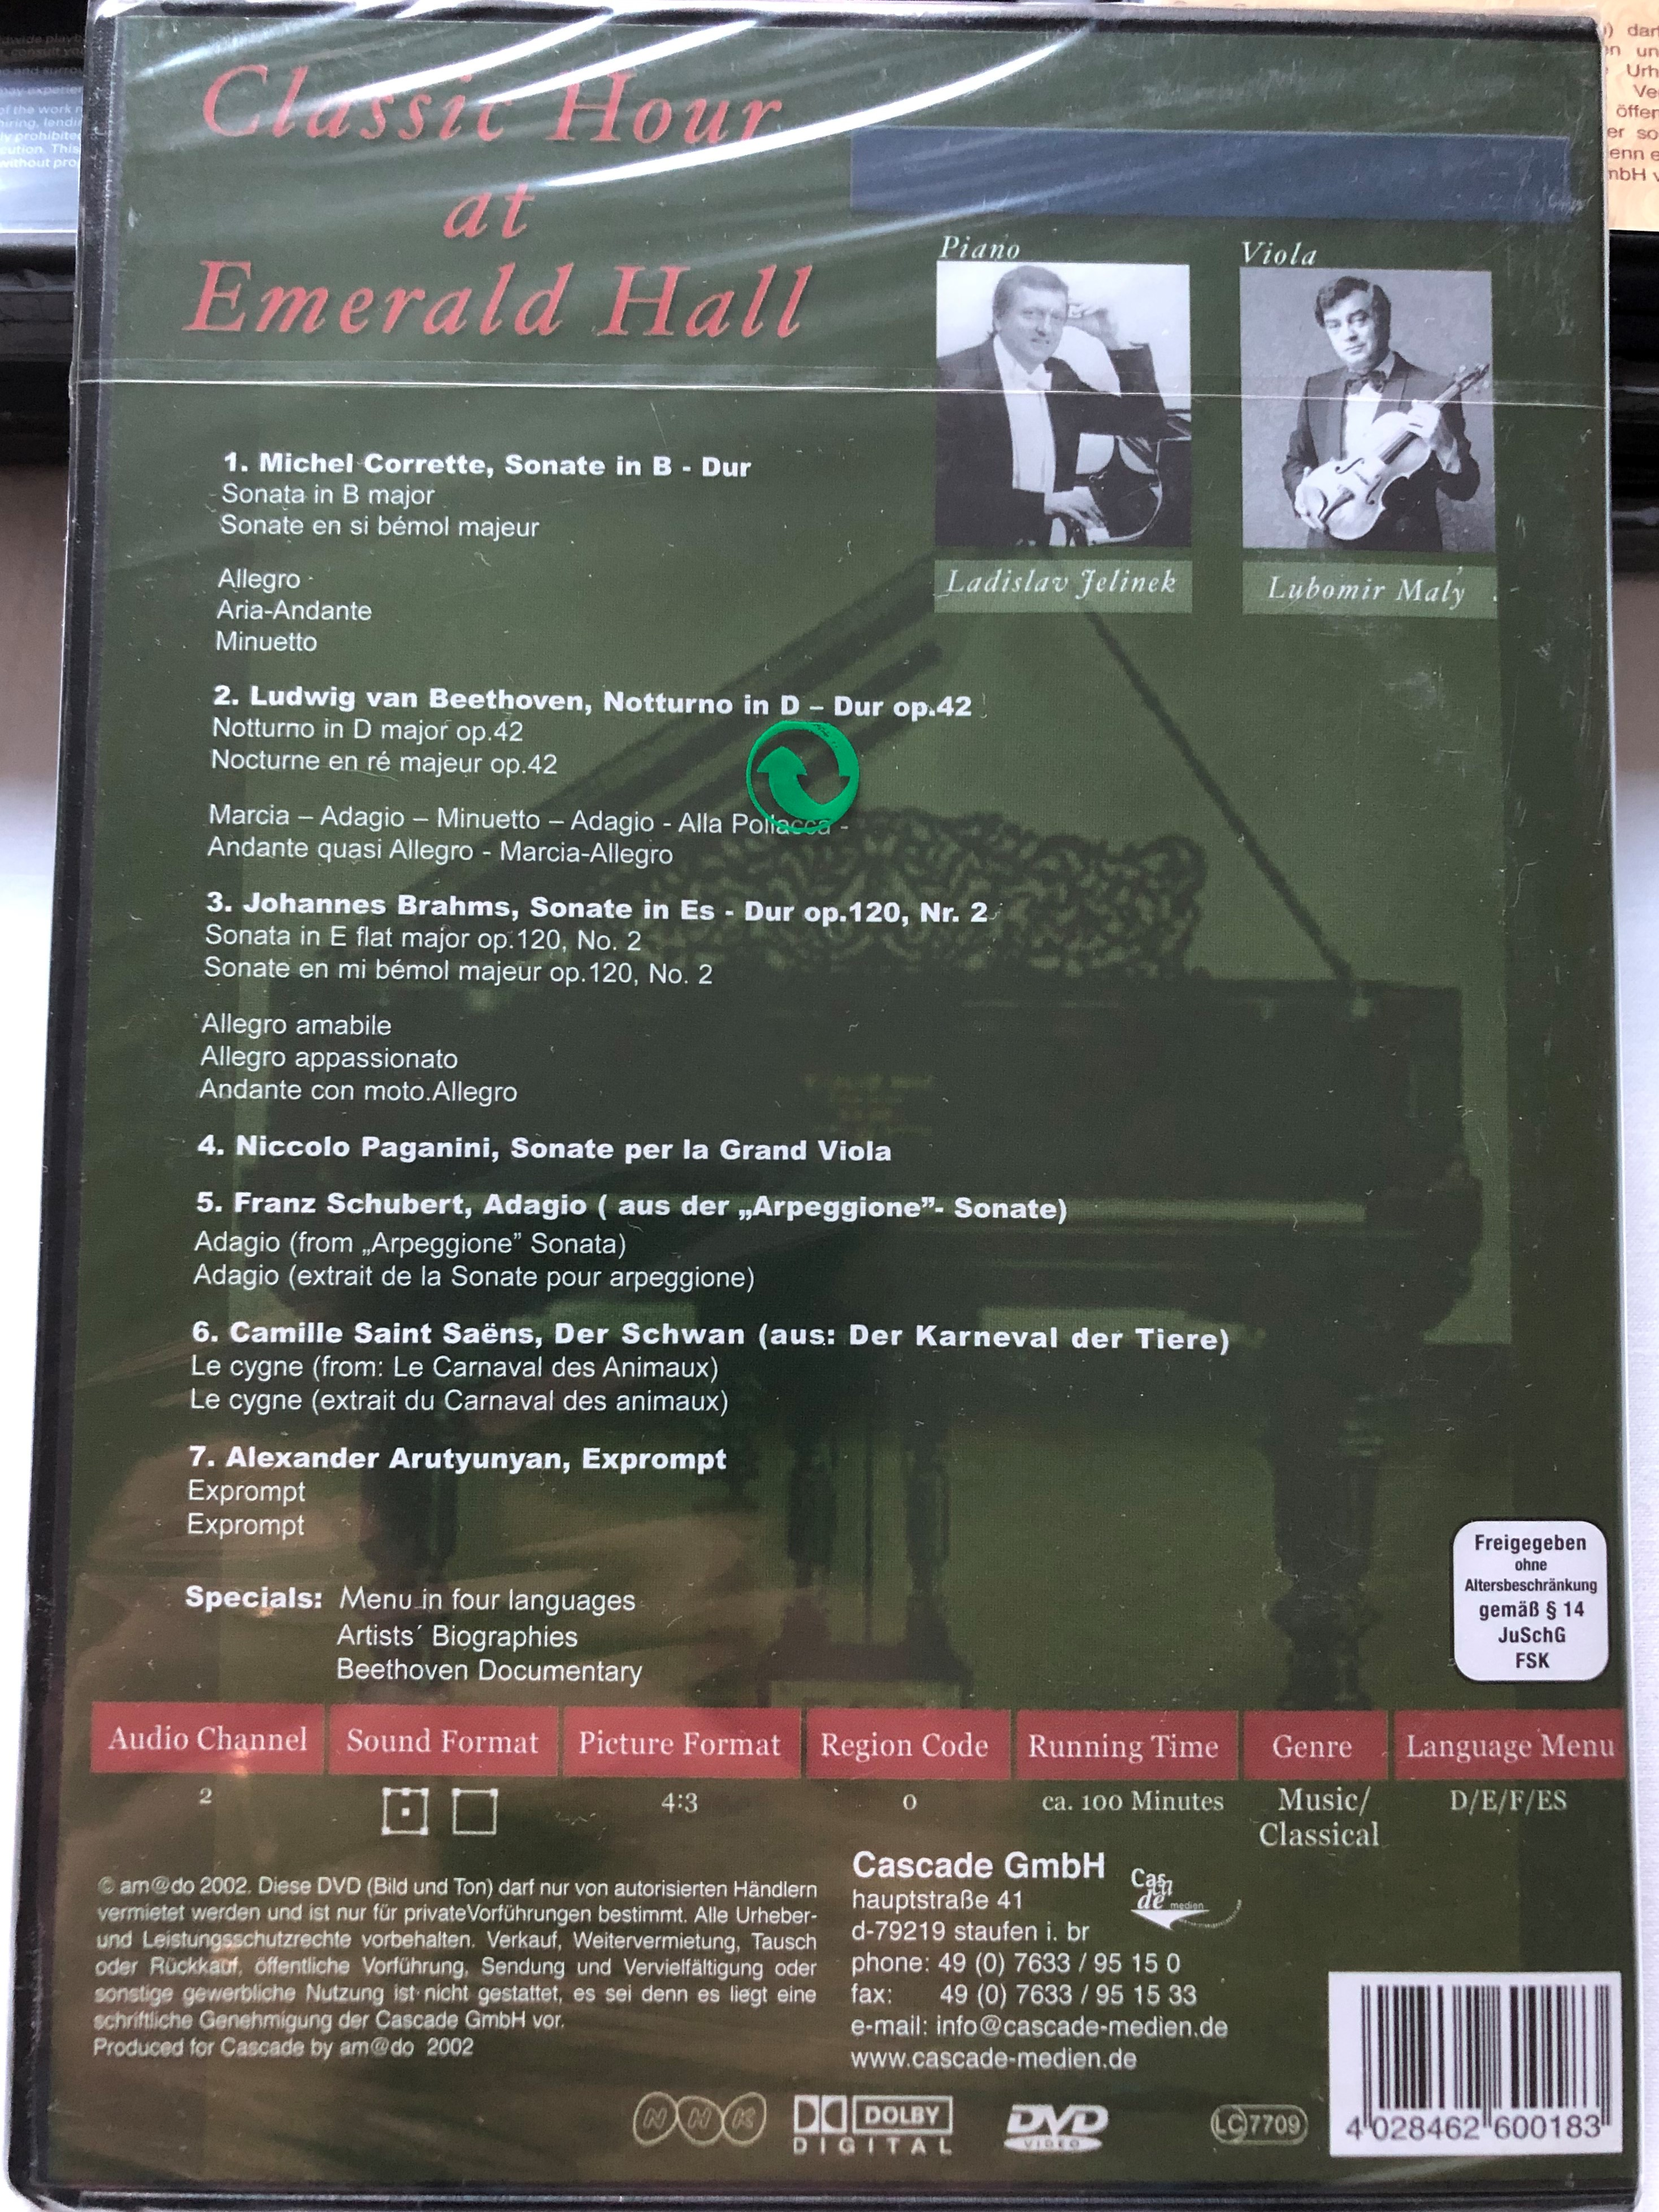 classic-hour-at-emerald-hall-dvd-2002-performed-by-ladislav-jelinek-piano-lubomir-maly-viola-michel-corrette-l.-van-beethoven-j.-brahms-paganini-schubeert-camille-saint-saens-amado-classics-2-.jpg